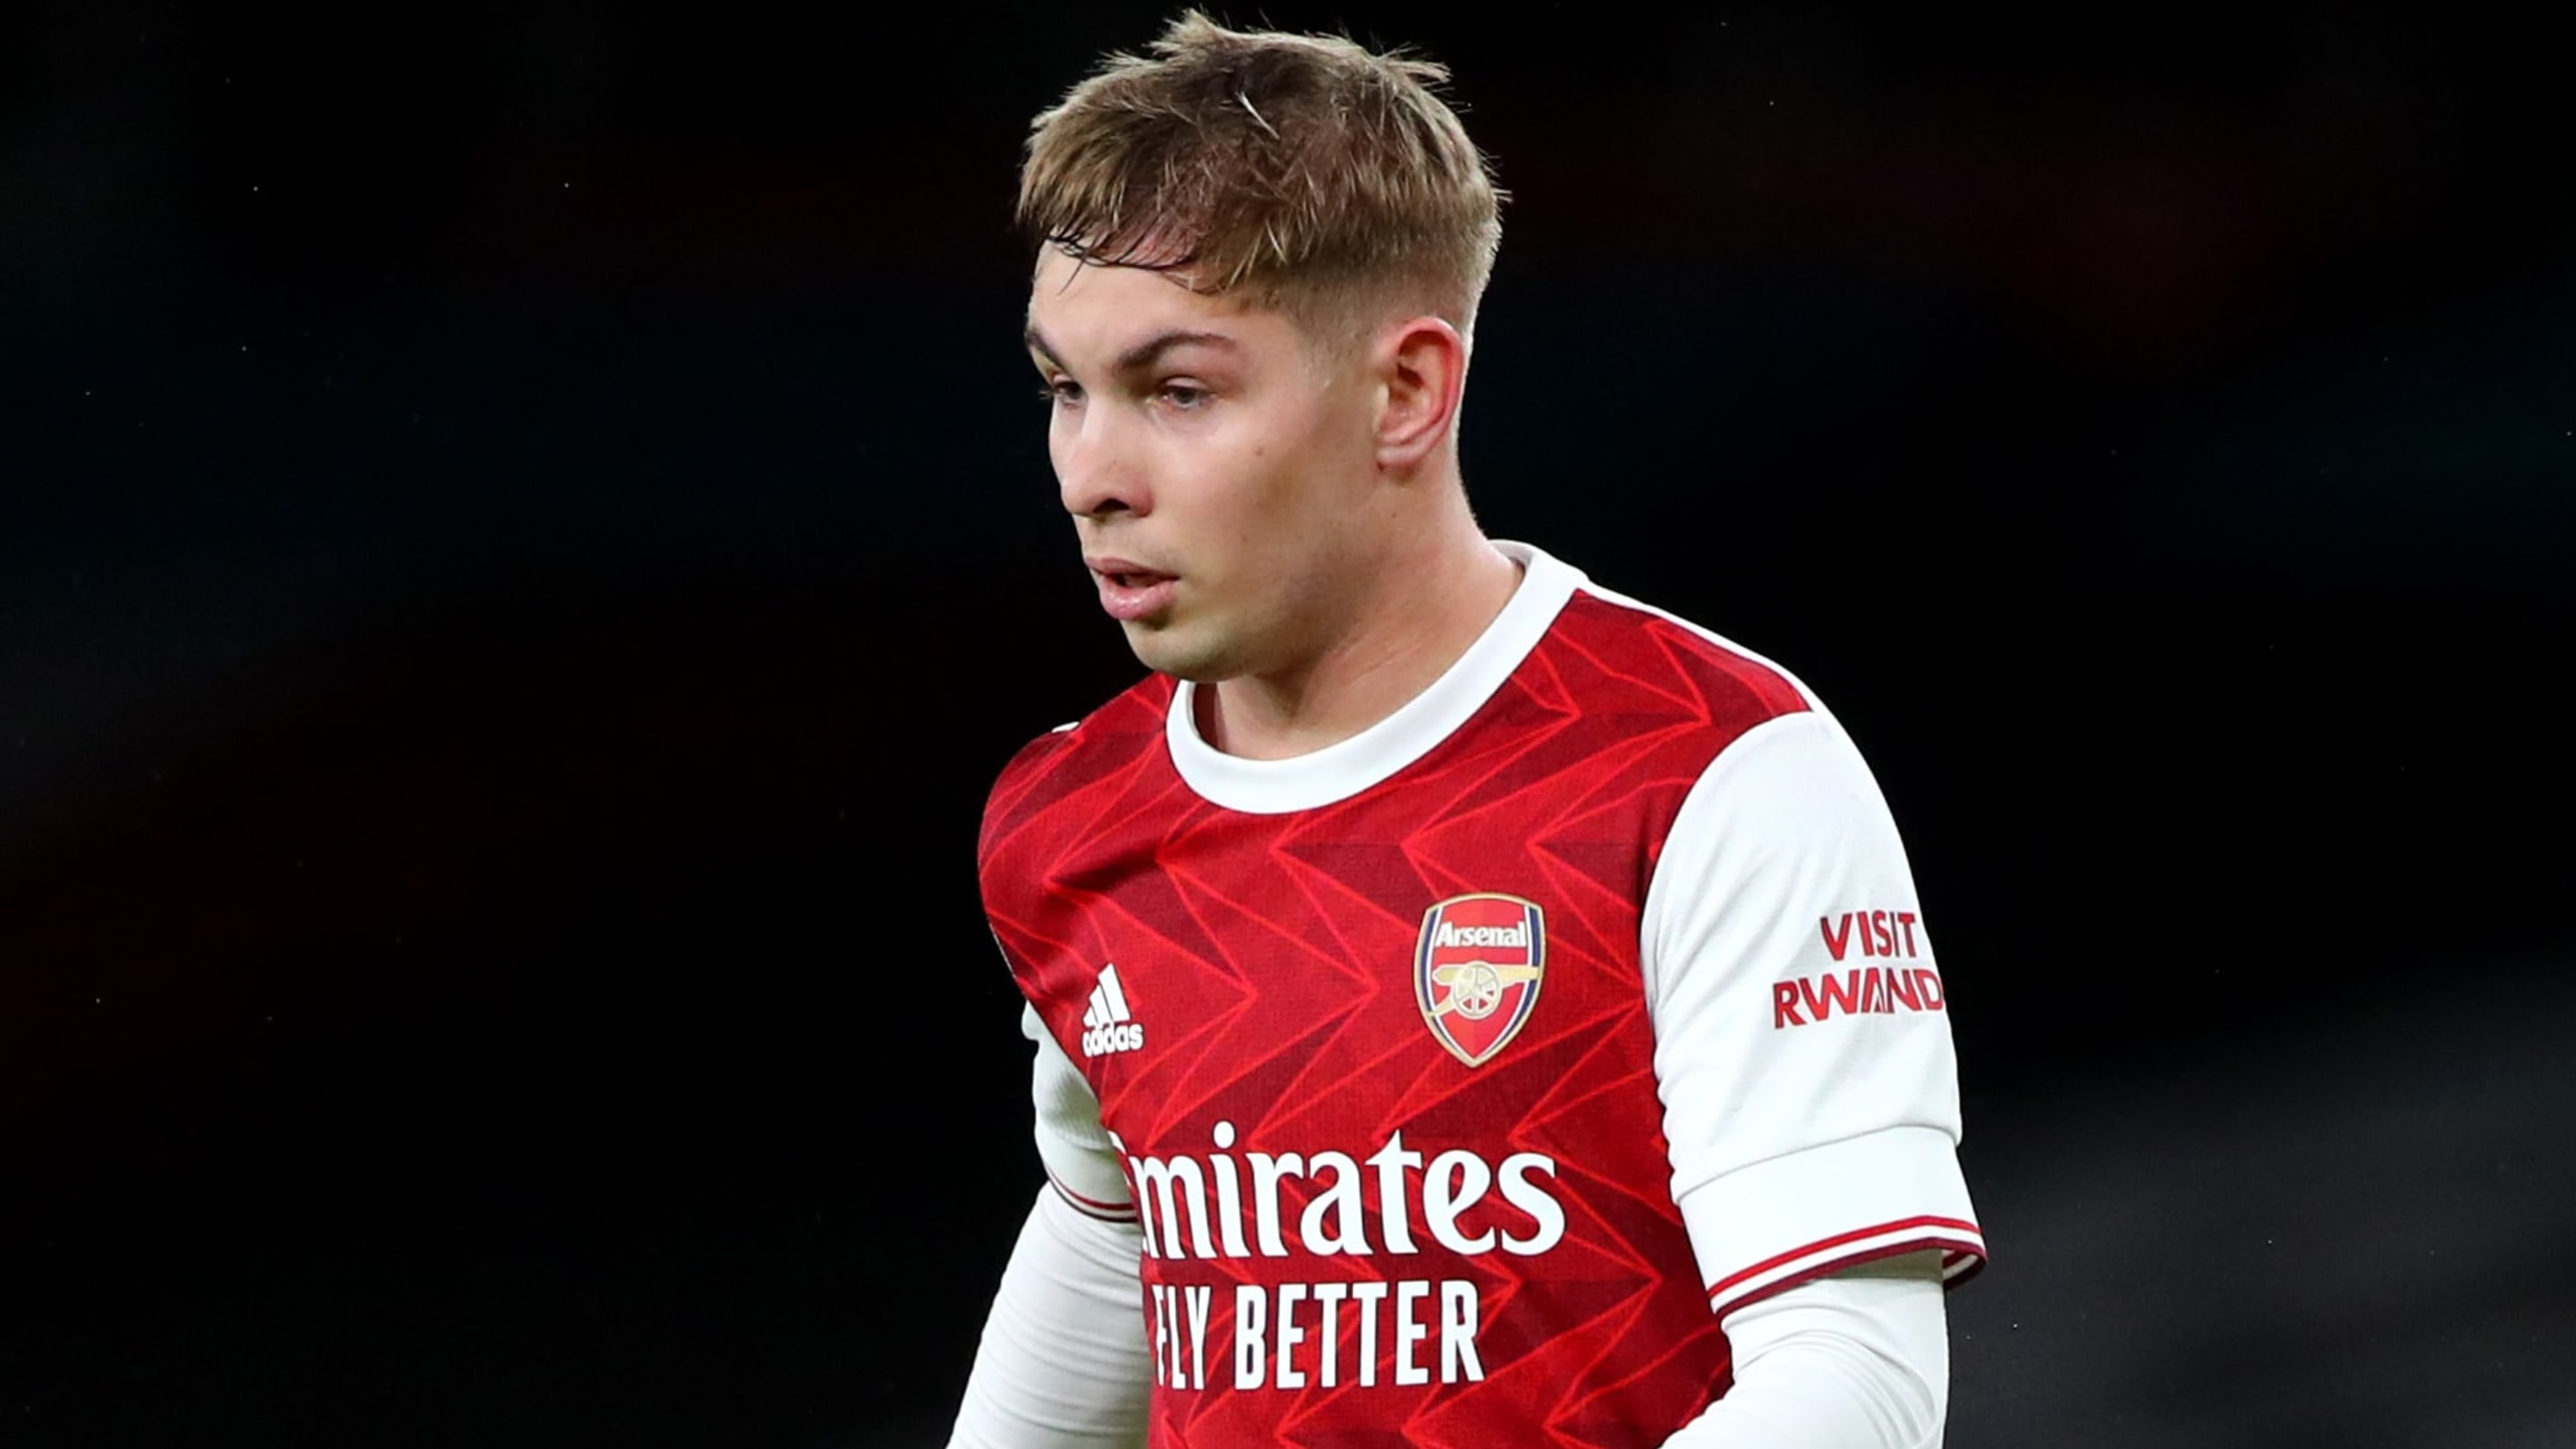 Mikel Arteta to put faith in Emile Smith Rowe instead of signing midfielder